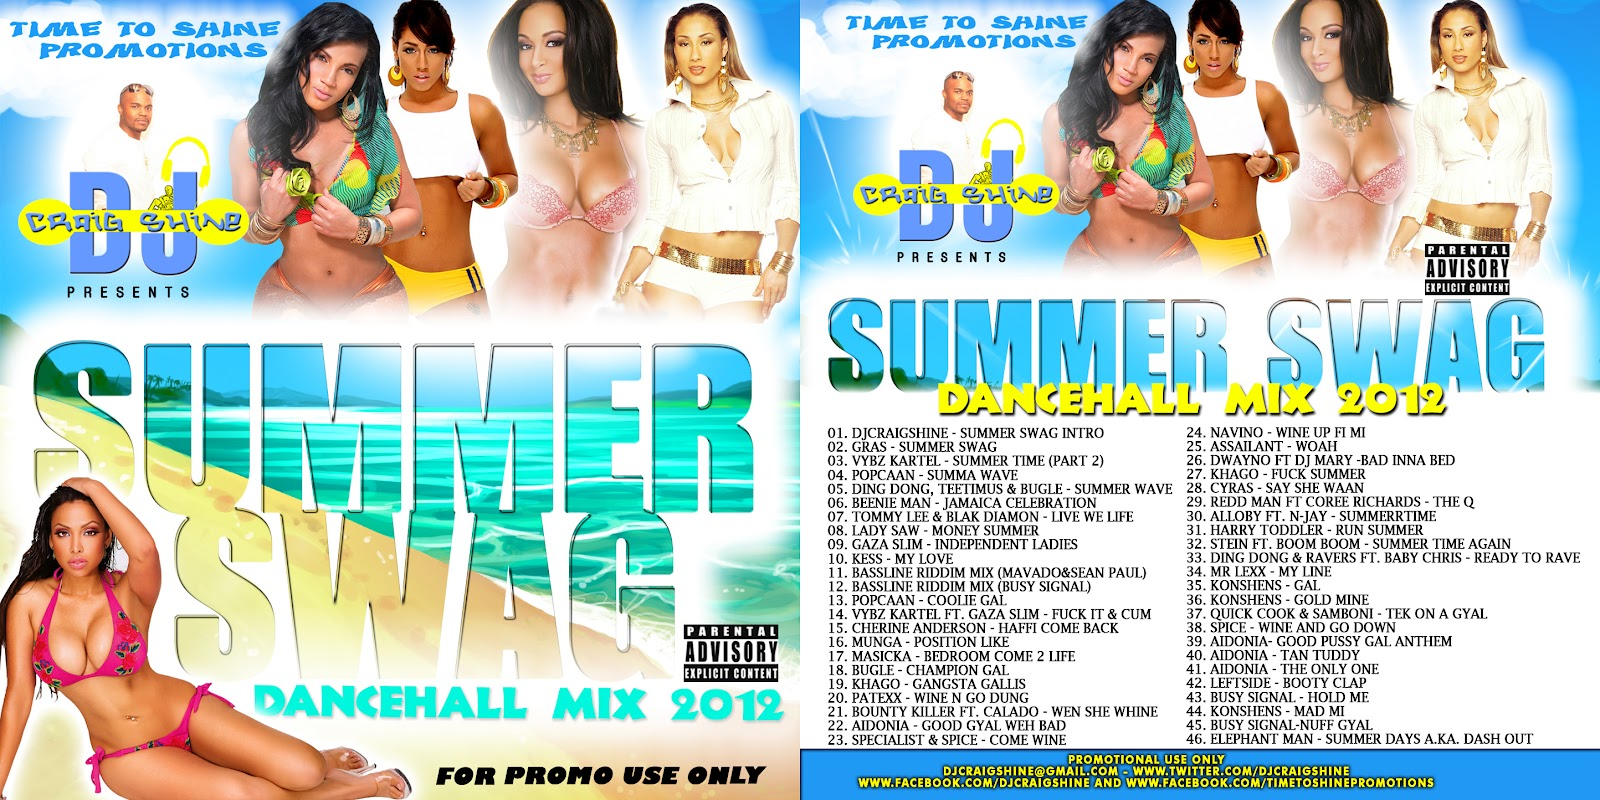 DJCRAIGSHINE-SUMMERSWAG_CD_COVER.jpg